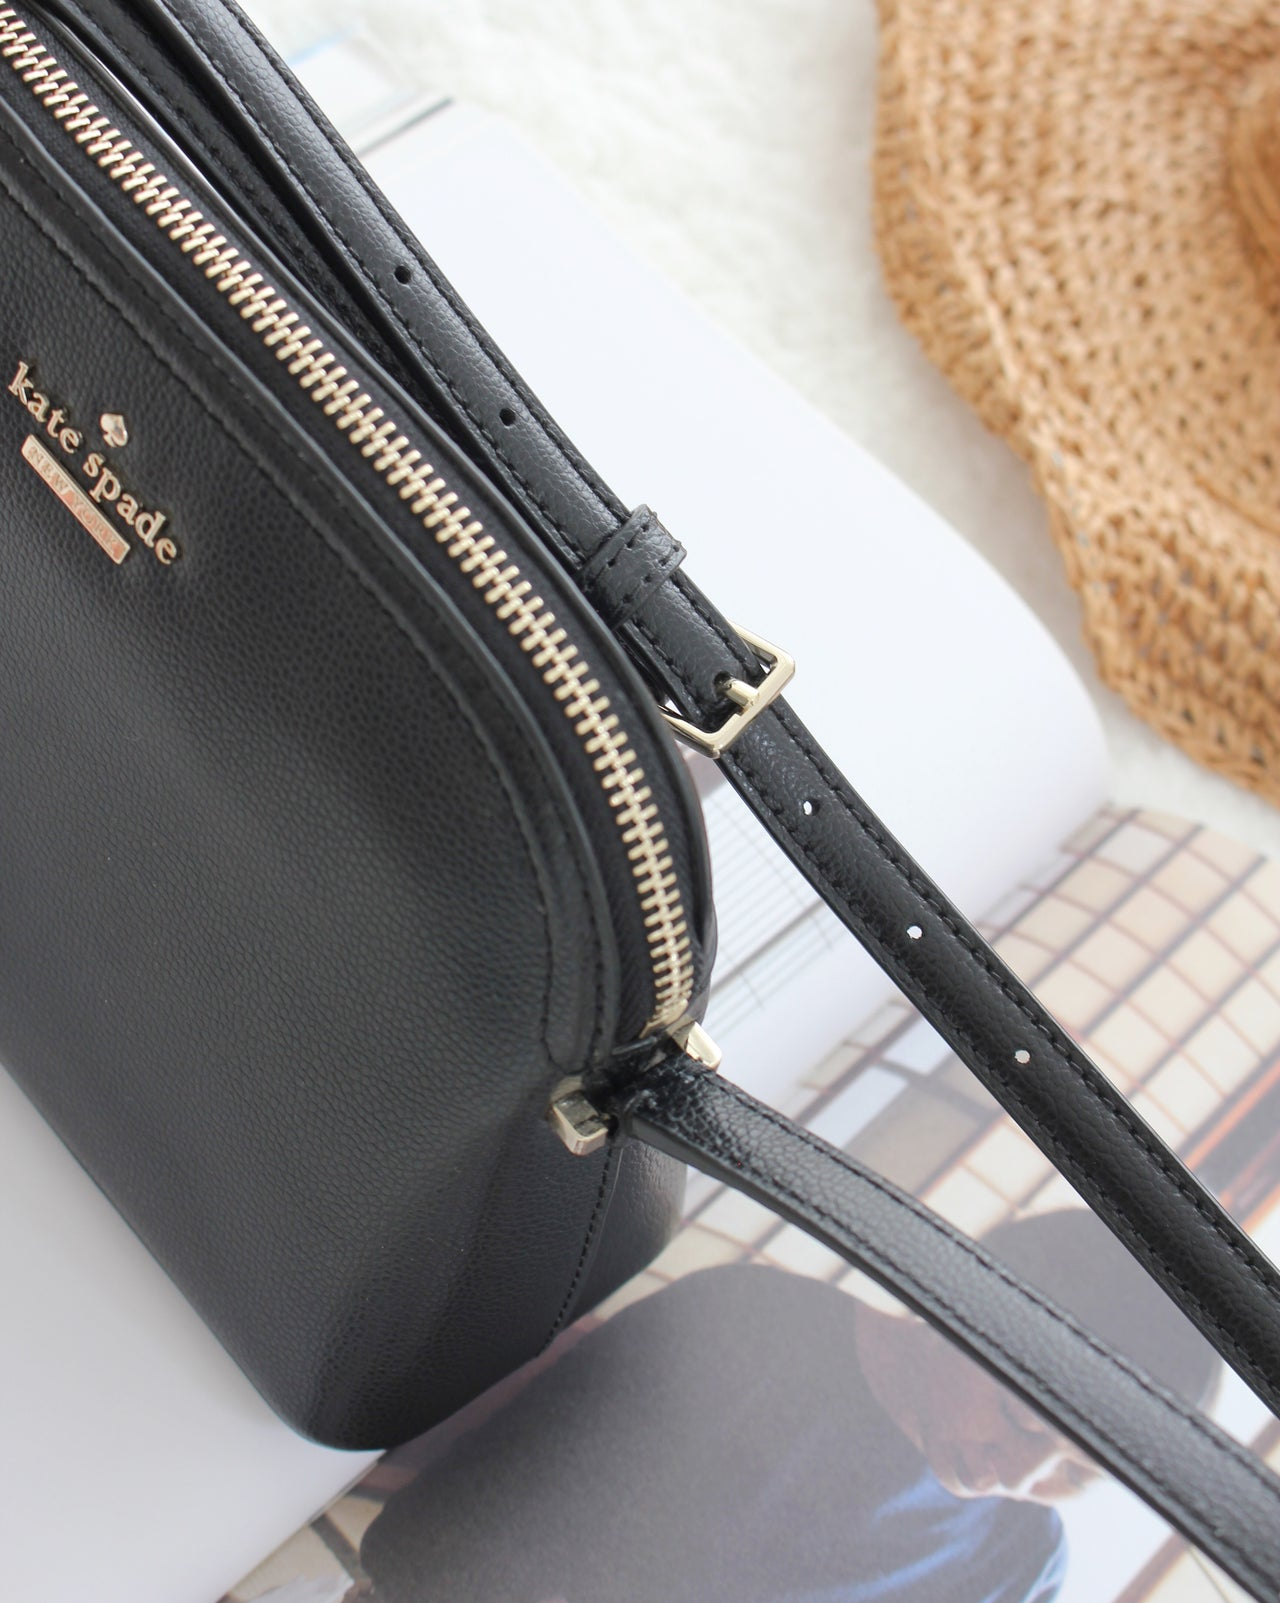 Kate Spade Peggy Patterson Drive Leather Crossbody Bag - LovelyMadness Clothing Online Fashion Malaysia